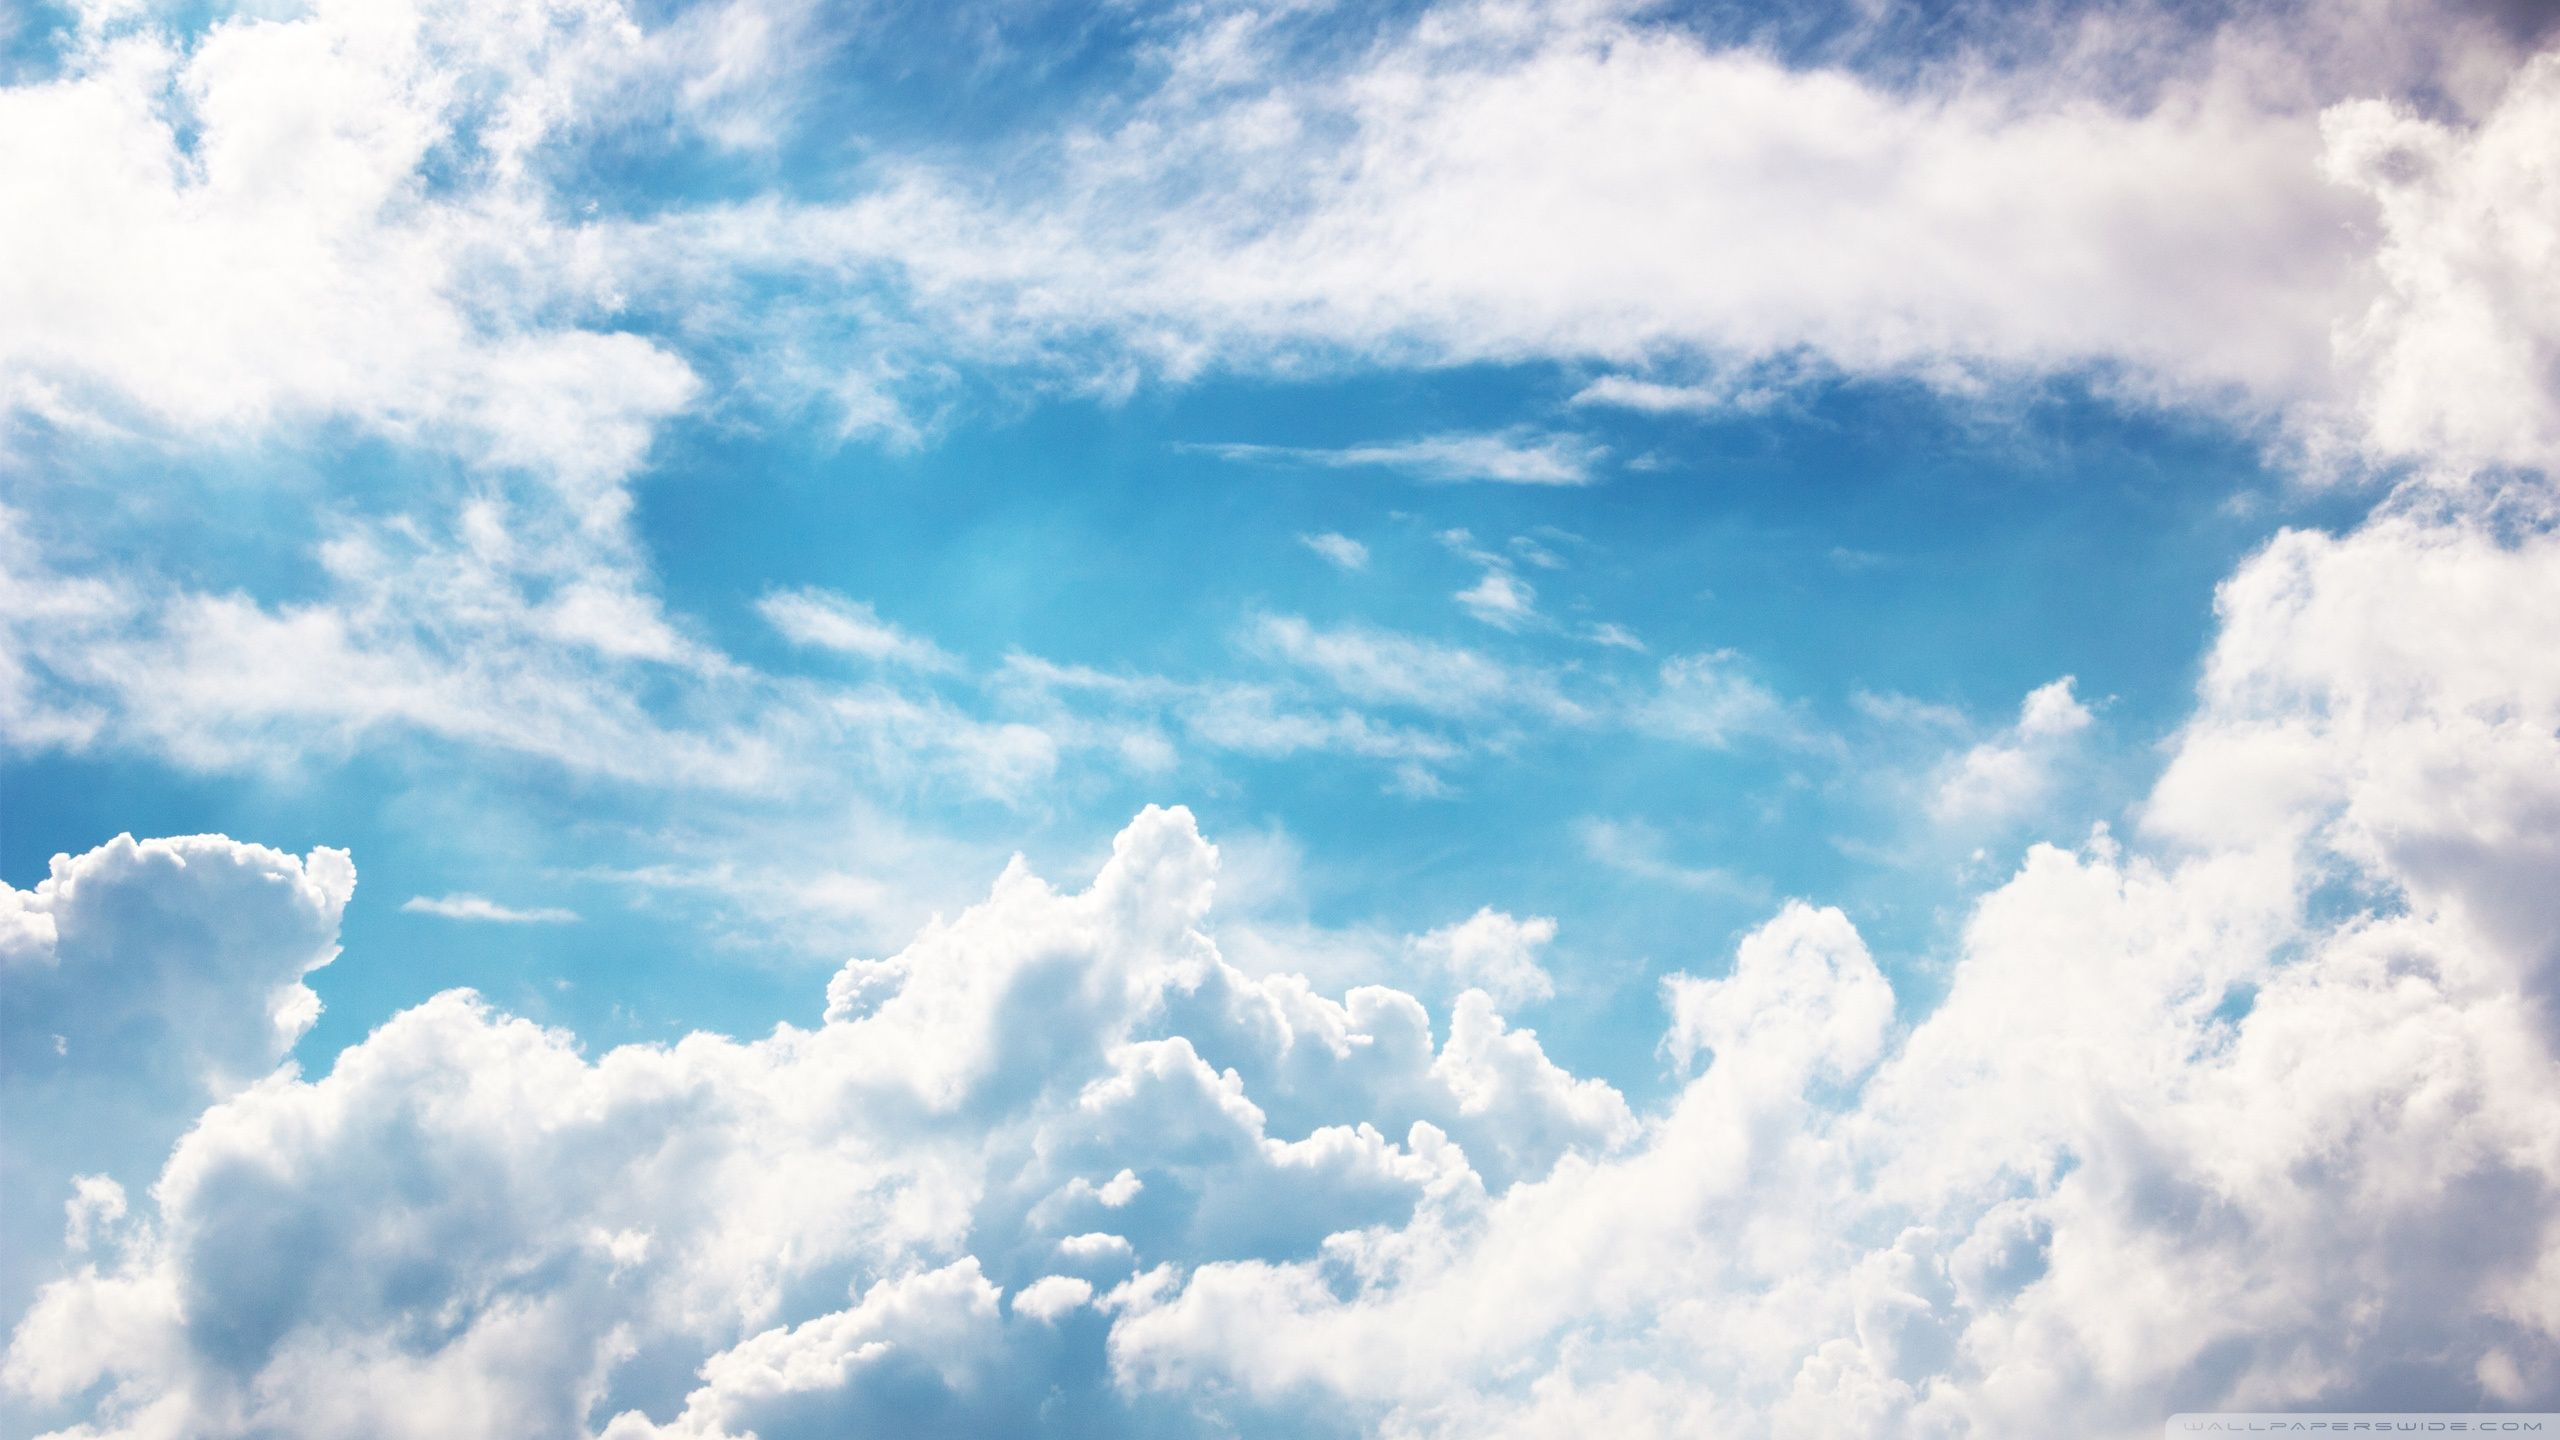 Sky Hd Wallpapers Top Free Sky Hd Backgrounds Wallpaperaccess